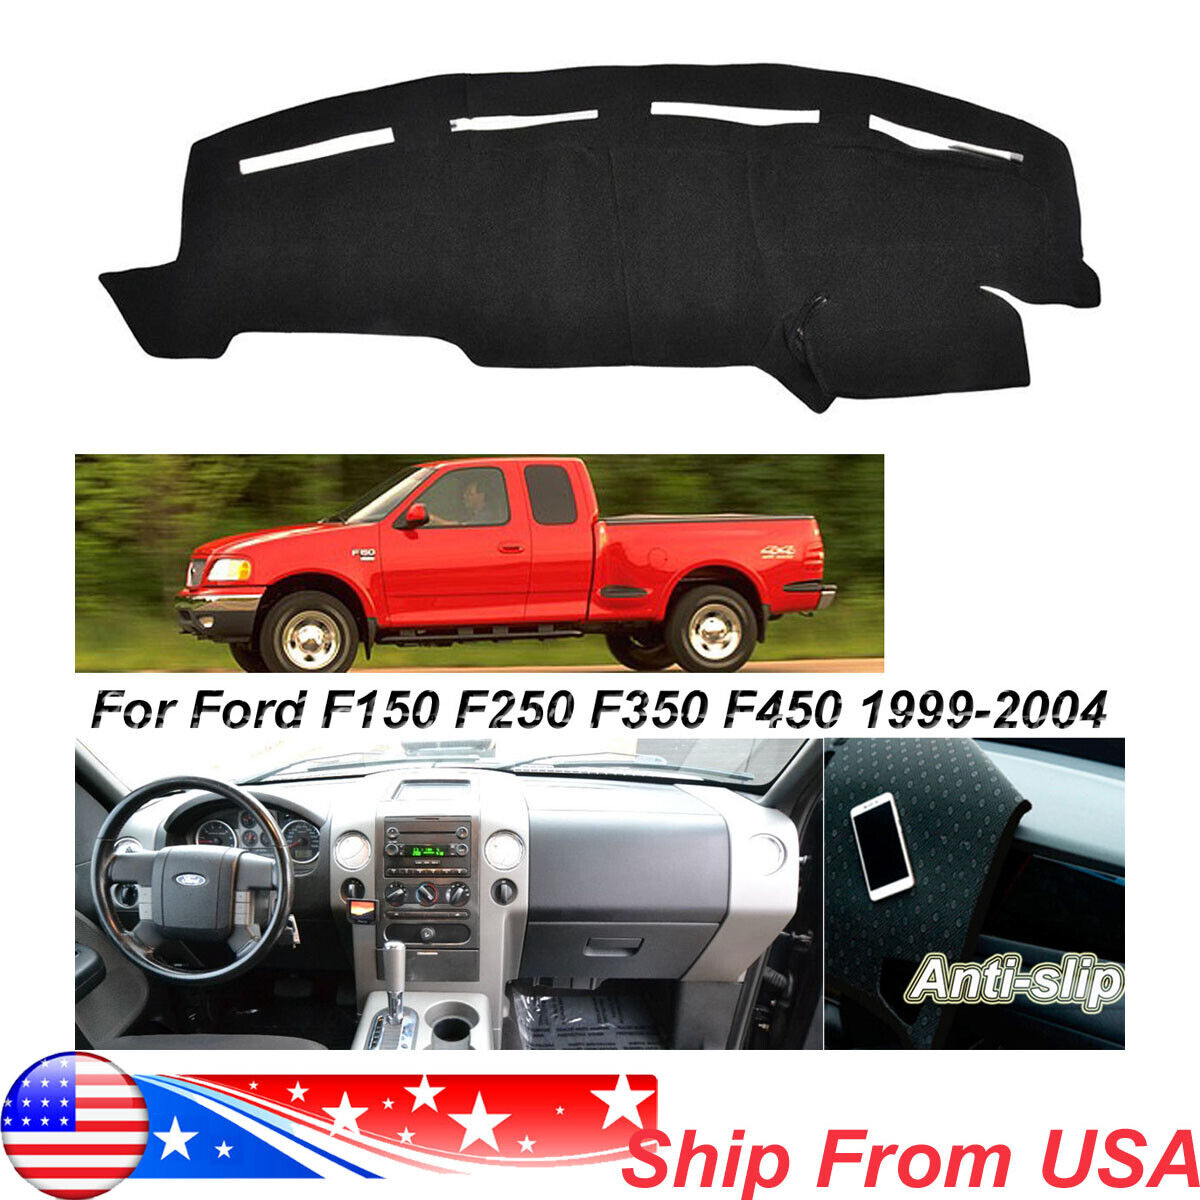 Dash Cover Mat Dashboard Cover Dashmat for Ford F250 F350 F450 1999-2004 Truck